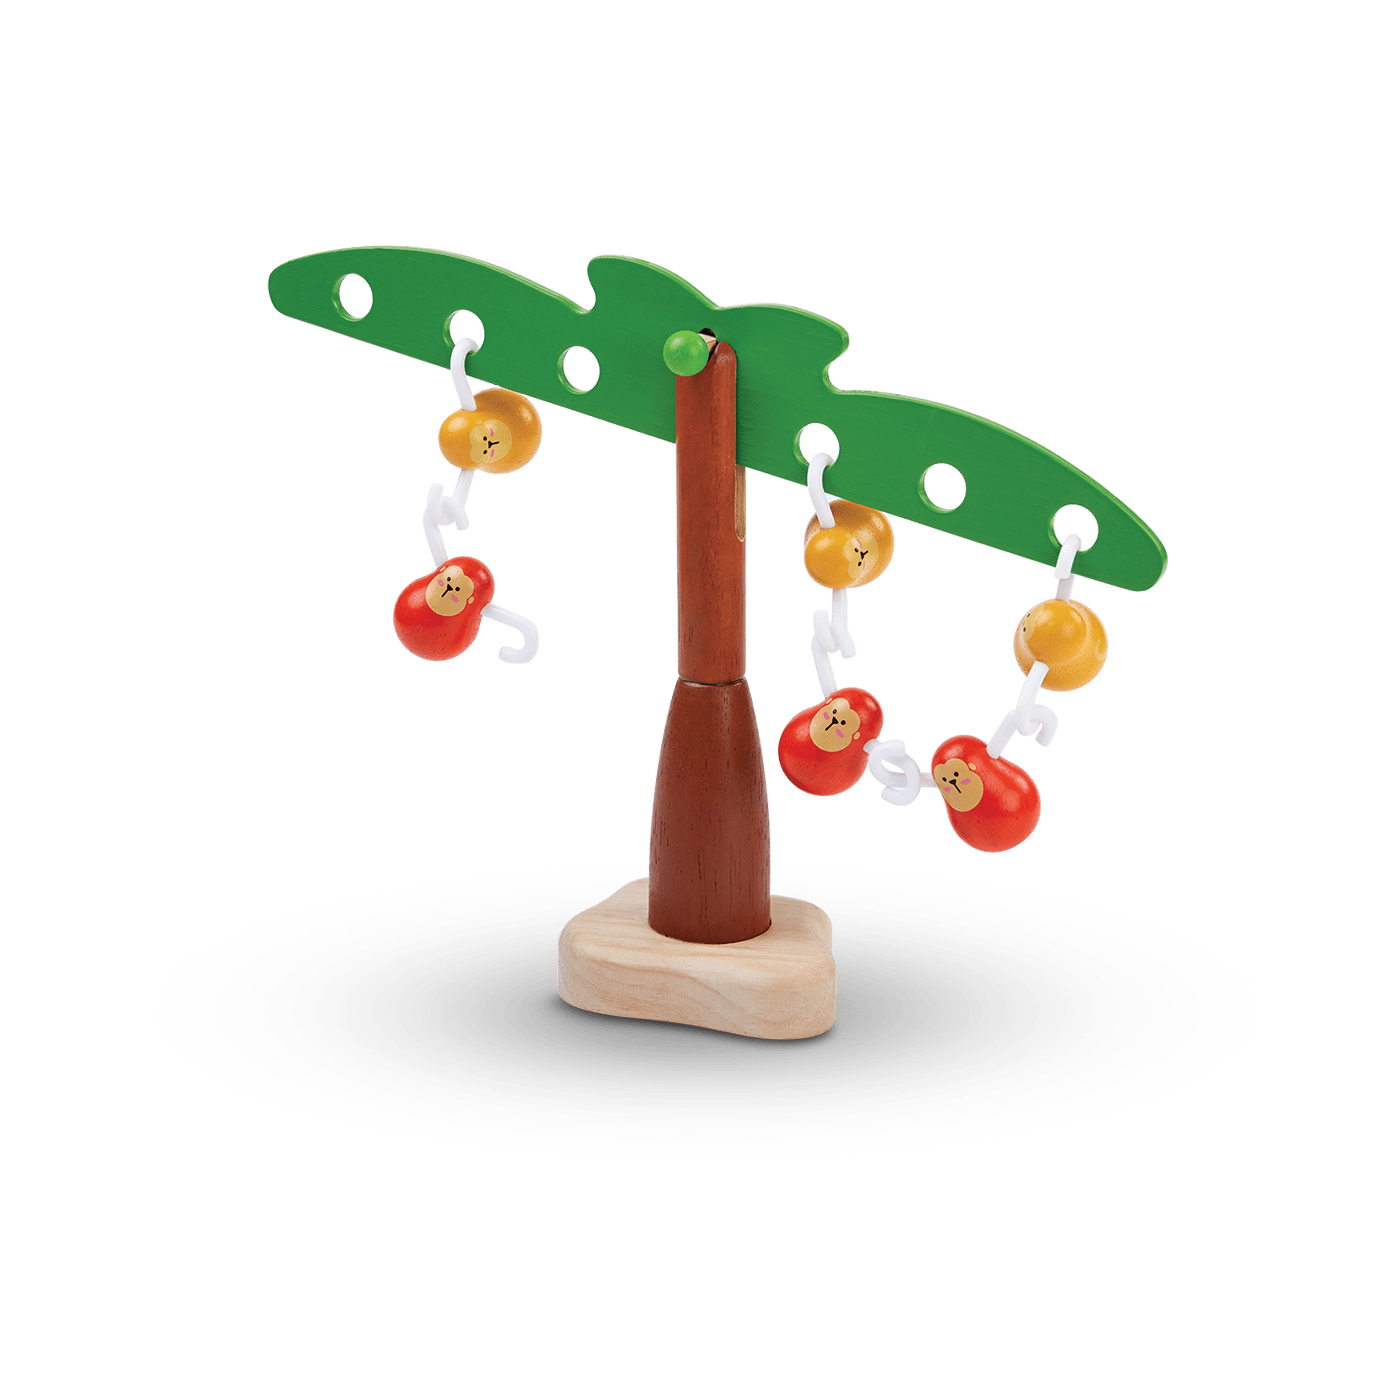 5349_PlanToys_BALANCING_MONKEYS_Game_and_Puzzles_Mathematical_Logical_Fine_Motor_Language_and_Communications_3yrs_Wooden_toys_Education_toys_Safety_Toys_Non-toxic_0.png